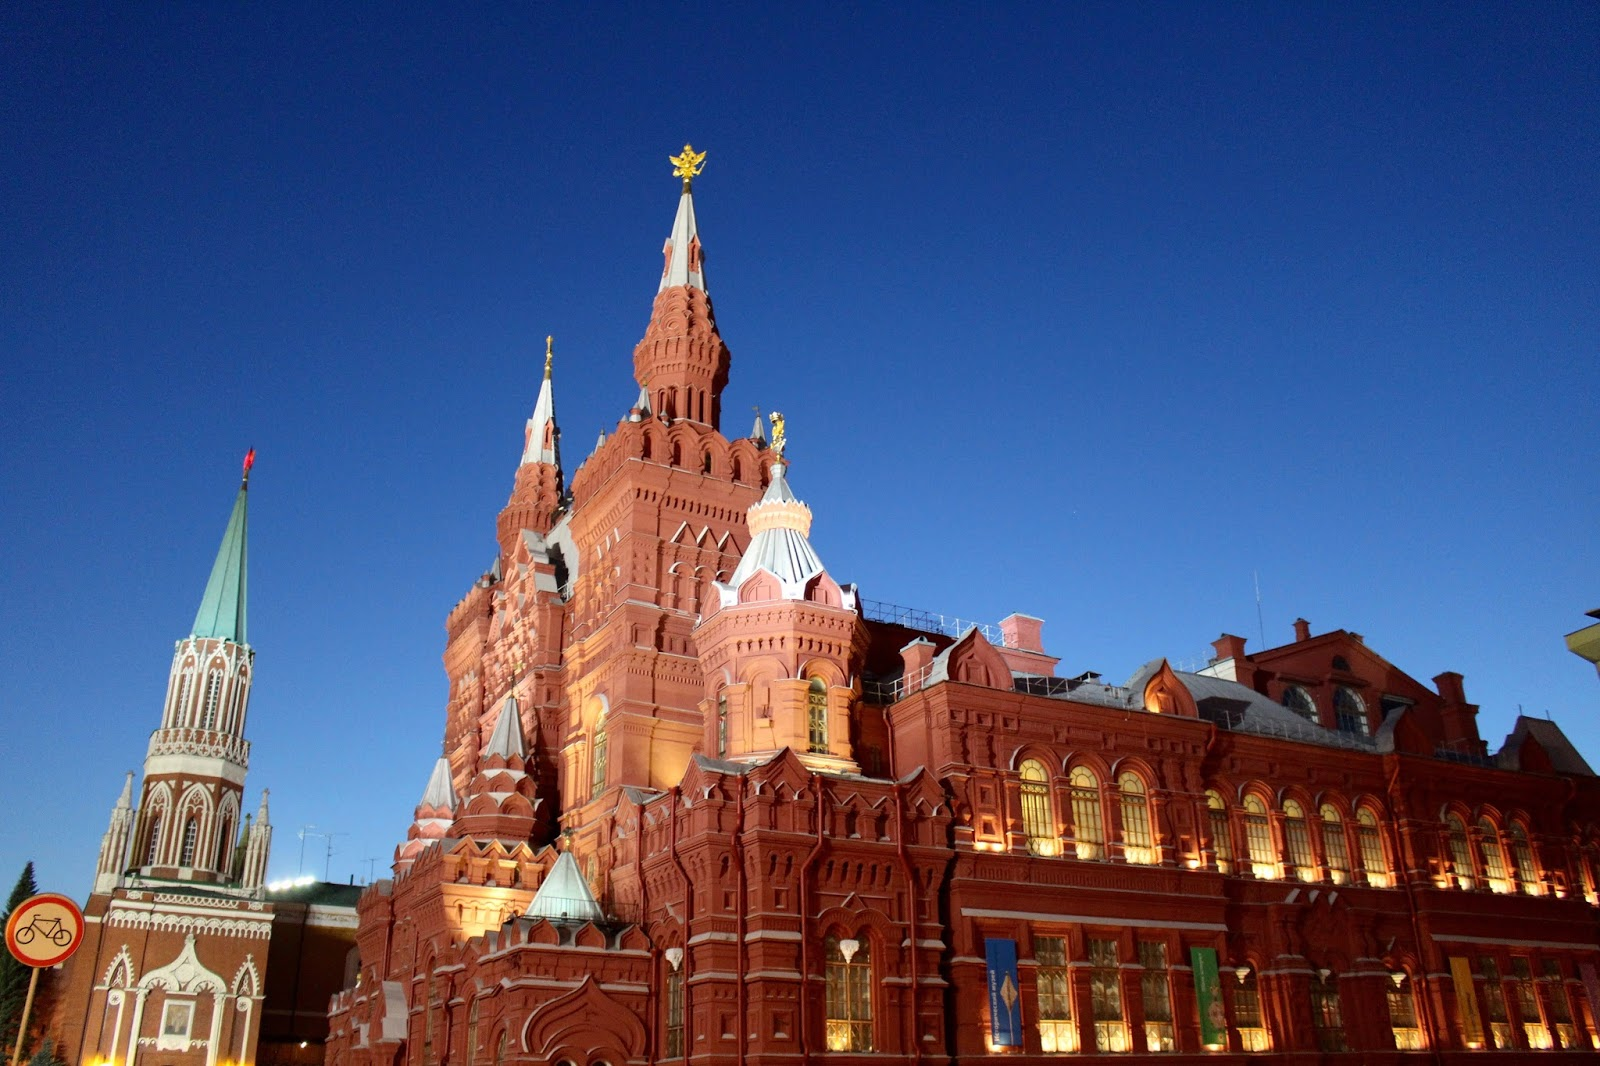 Red Square | Kremlin | GUM | St. Basil's Cathedral